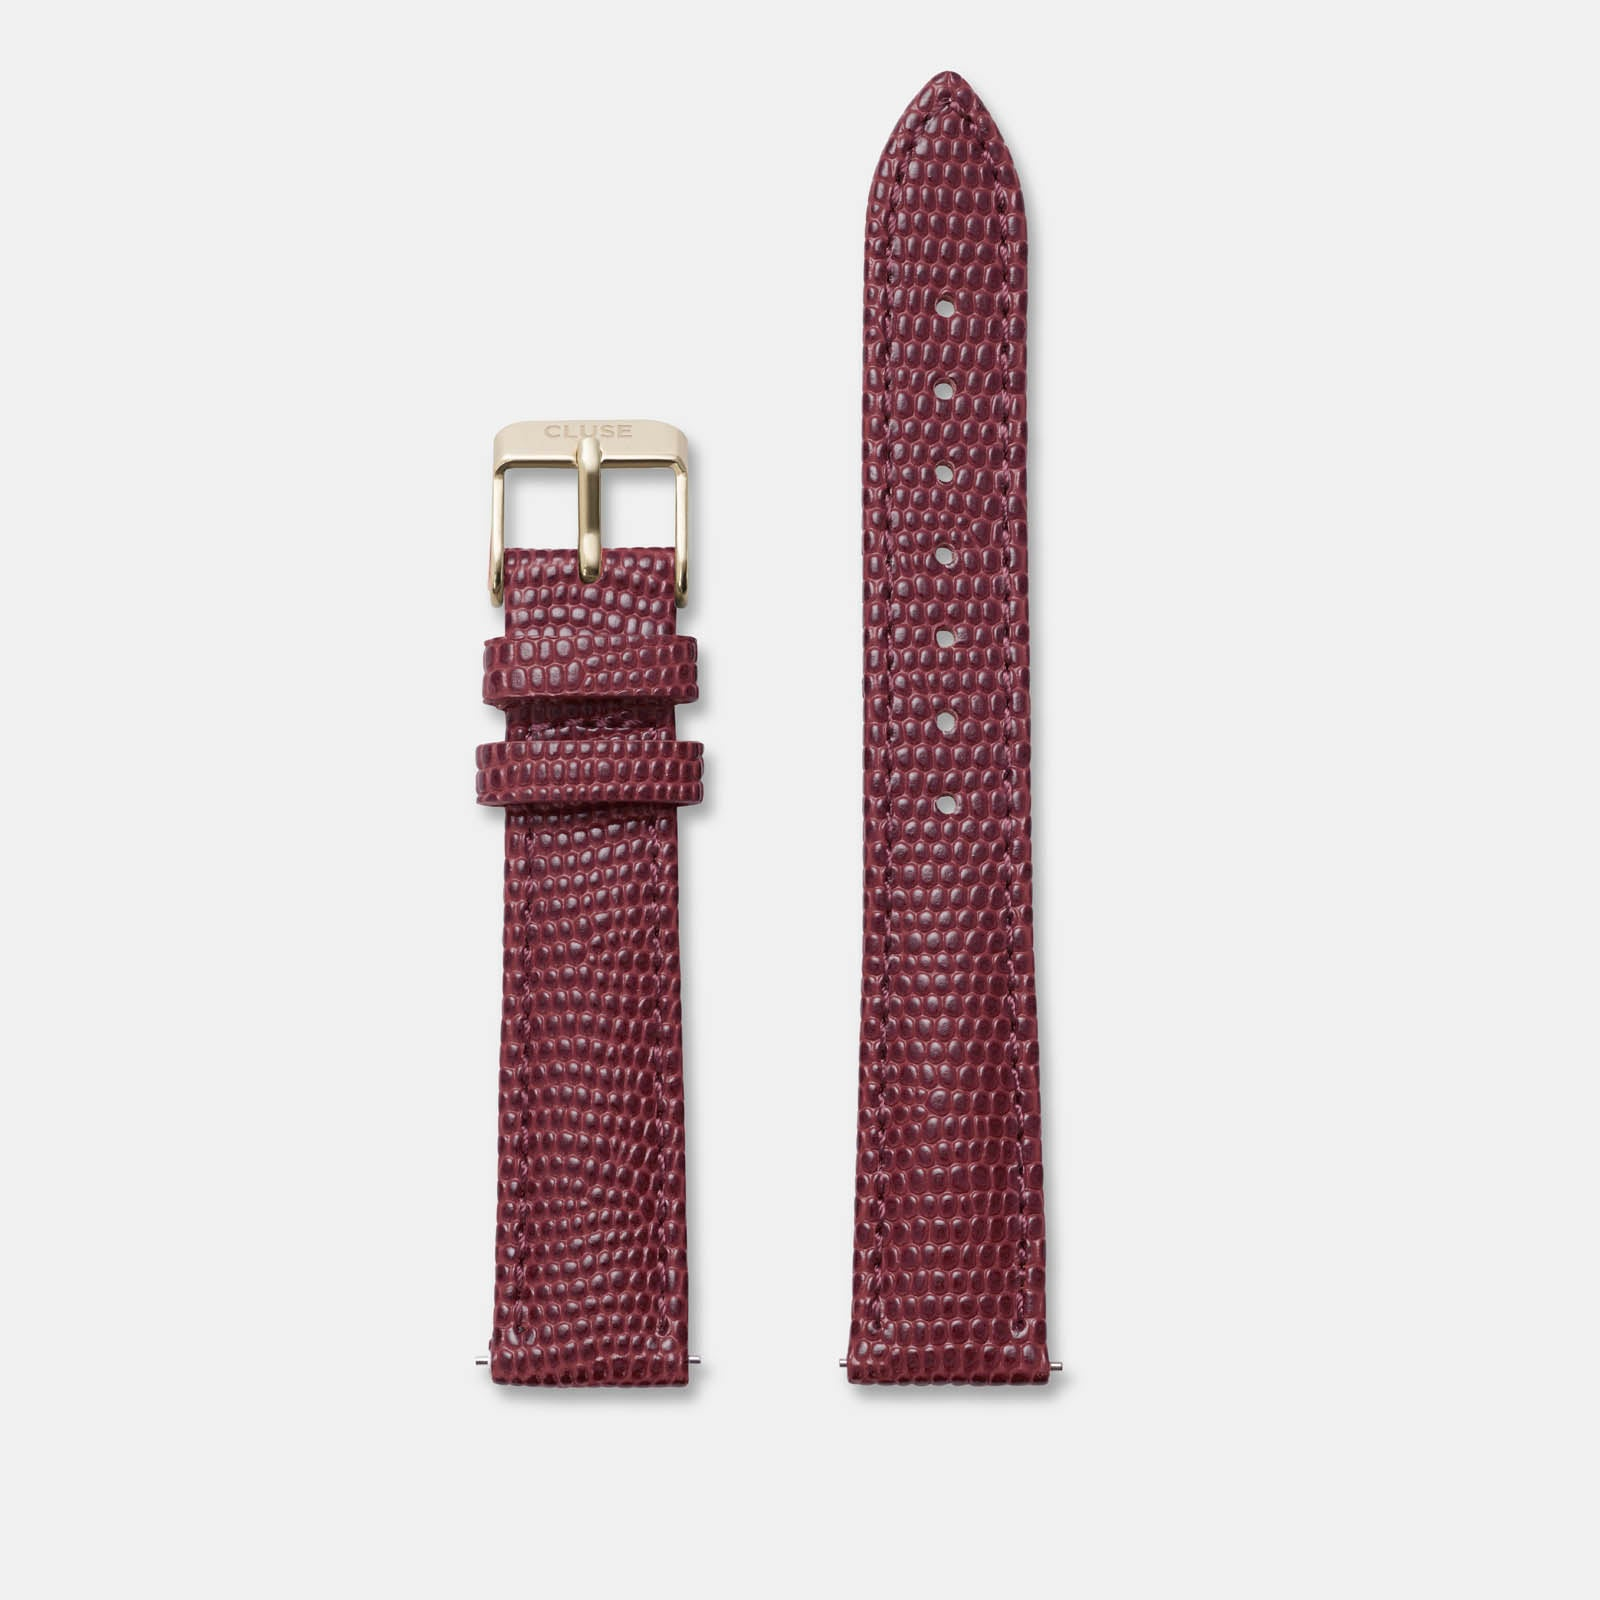 CLUSE 16 mm Strap Burgundy Lizard/Gold CLS379 - uhrenarmband